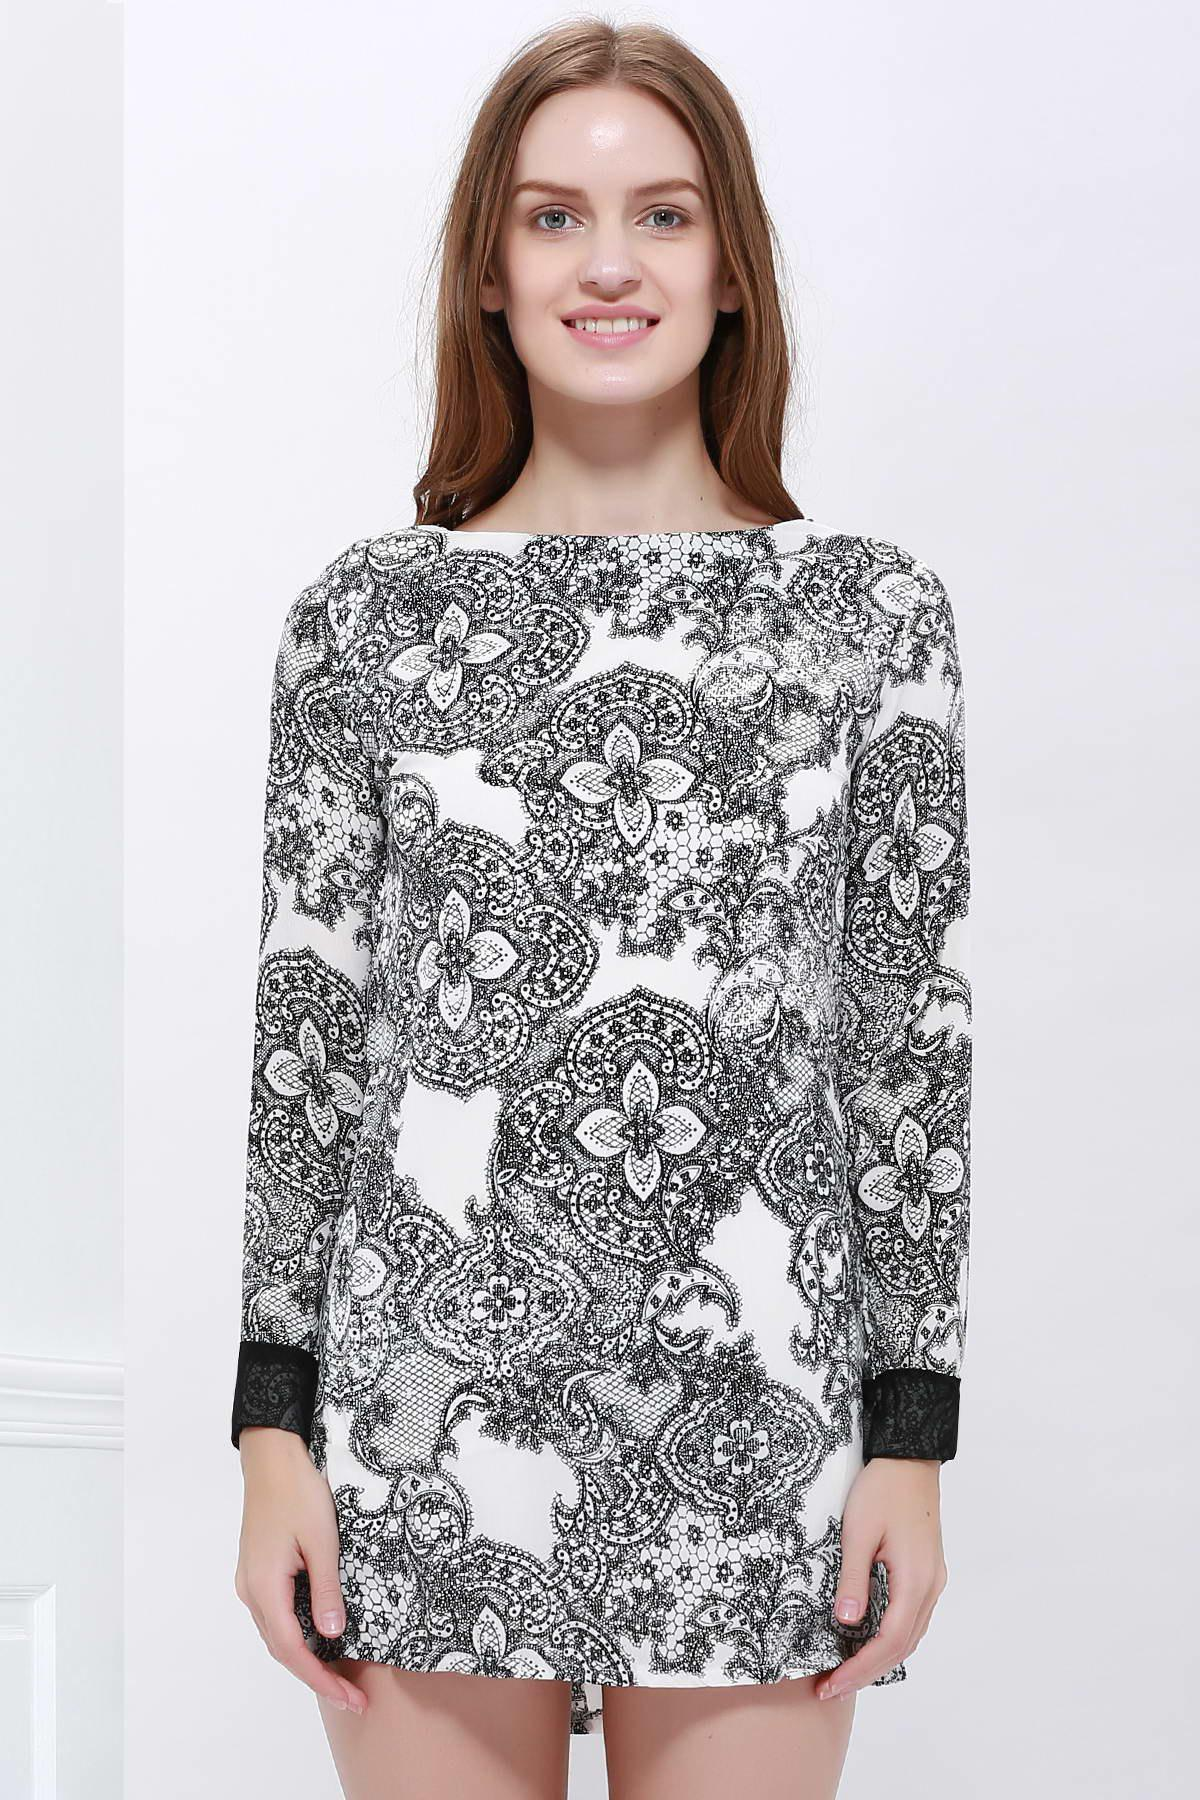 Elegant Printing Long Sleeved Women's Dress Trends For Spring 2013 - AS THE PICTURE M